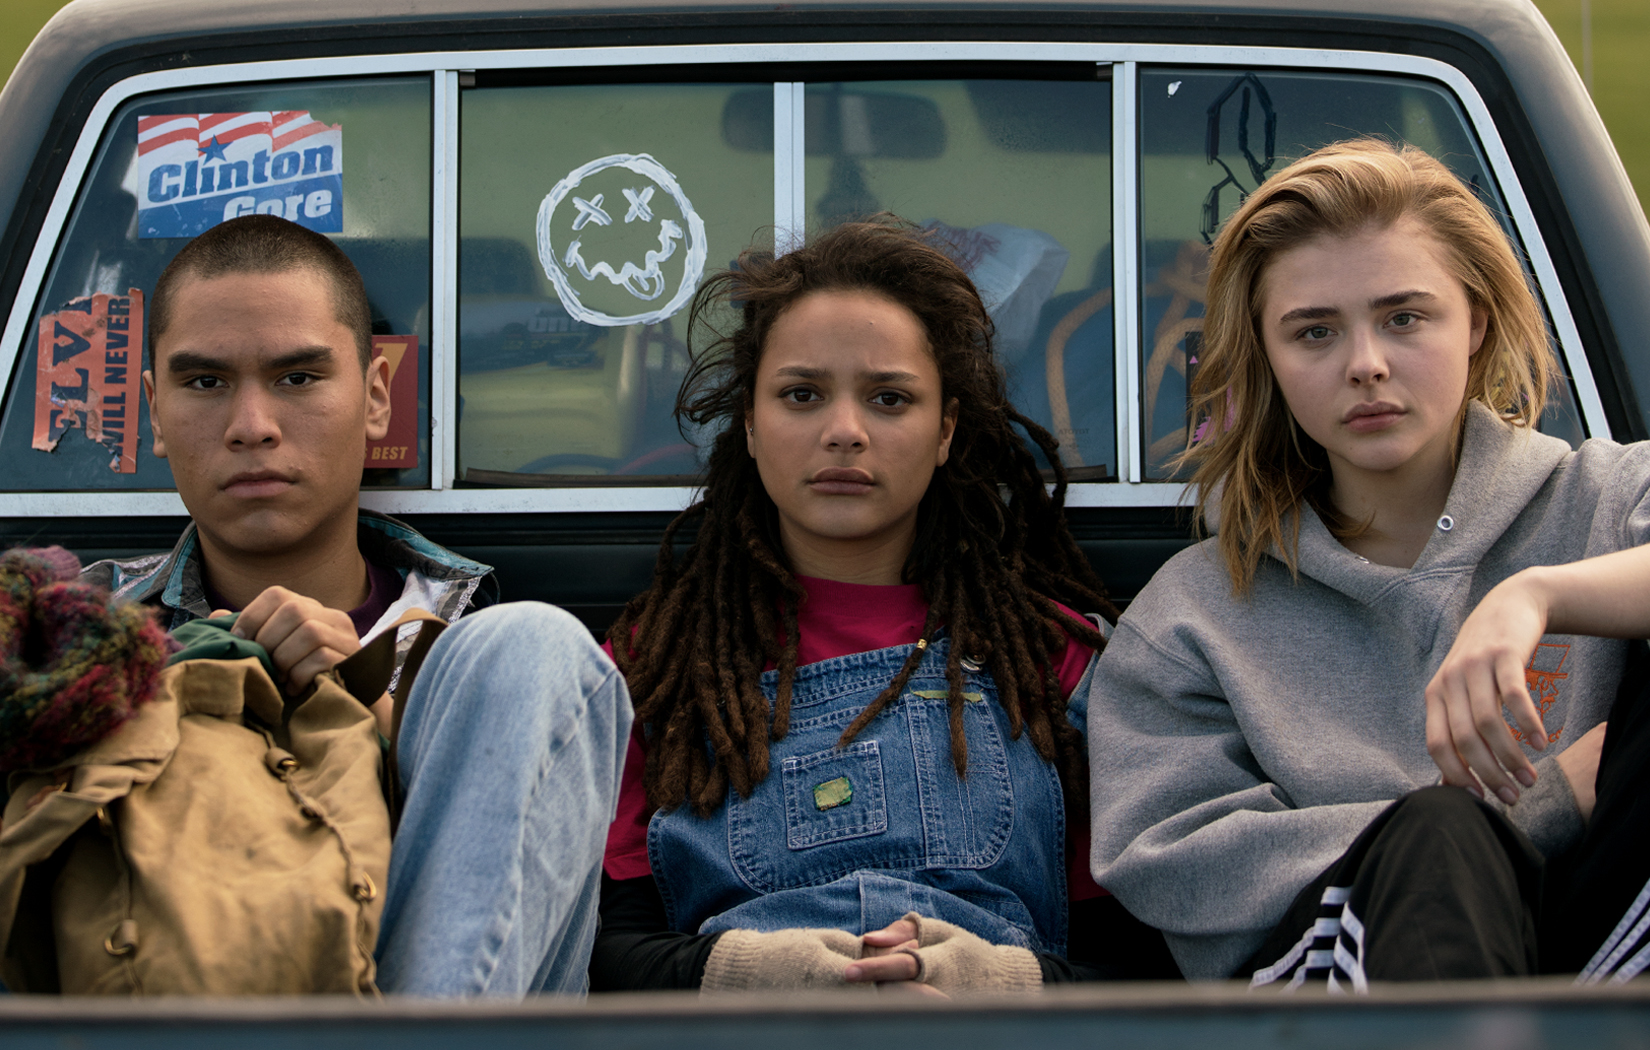 Forrest Goodluck, Sasha Lane and Chloe Grace Moretz in the film.